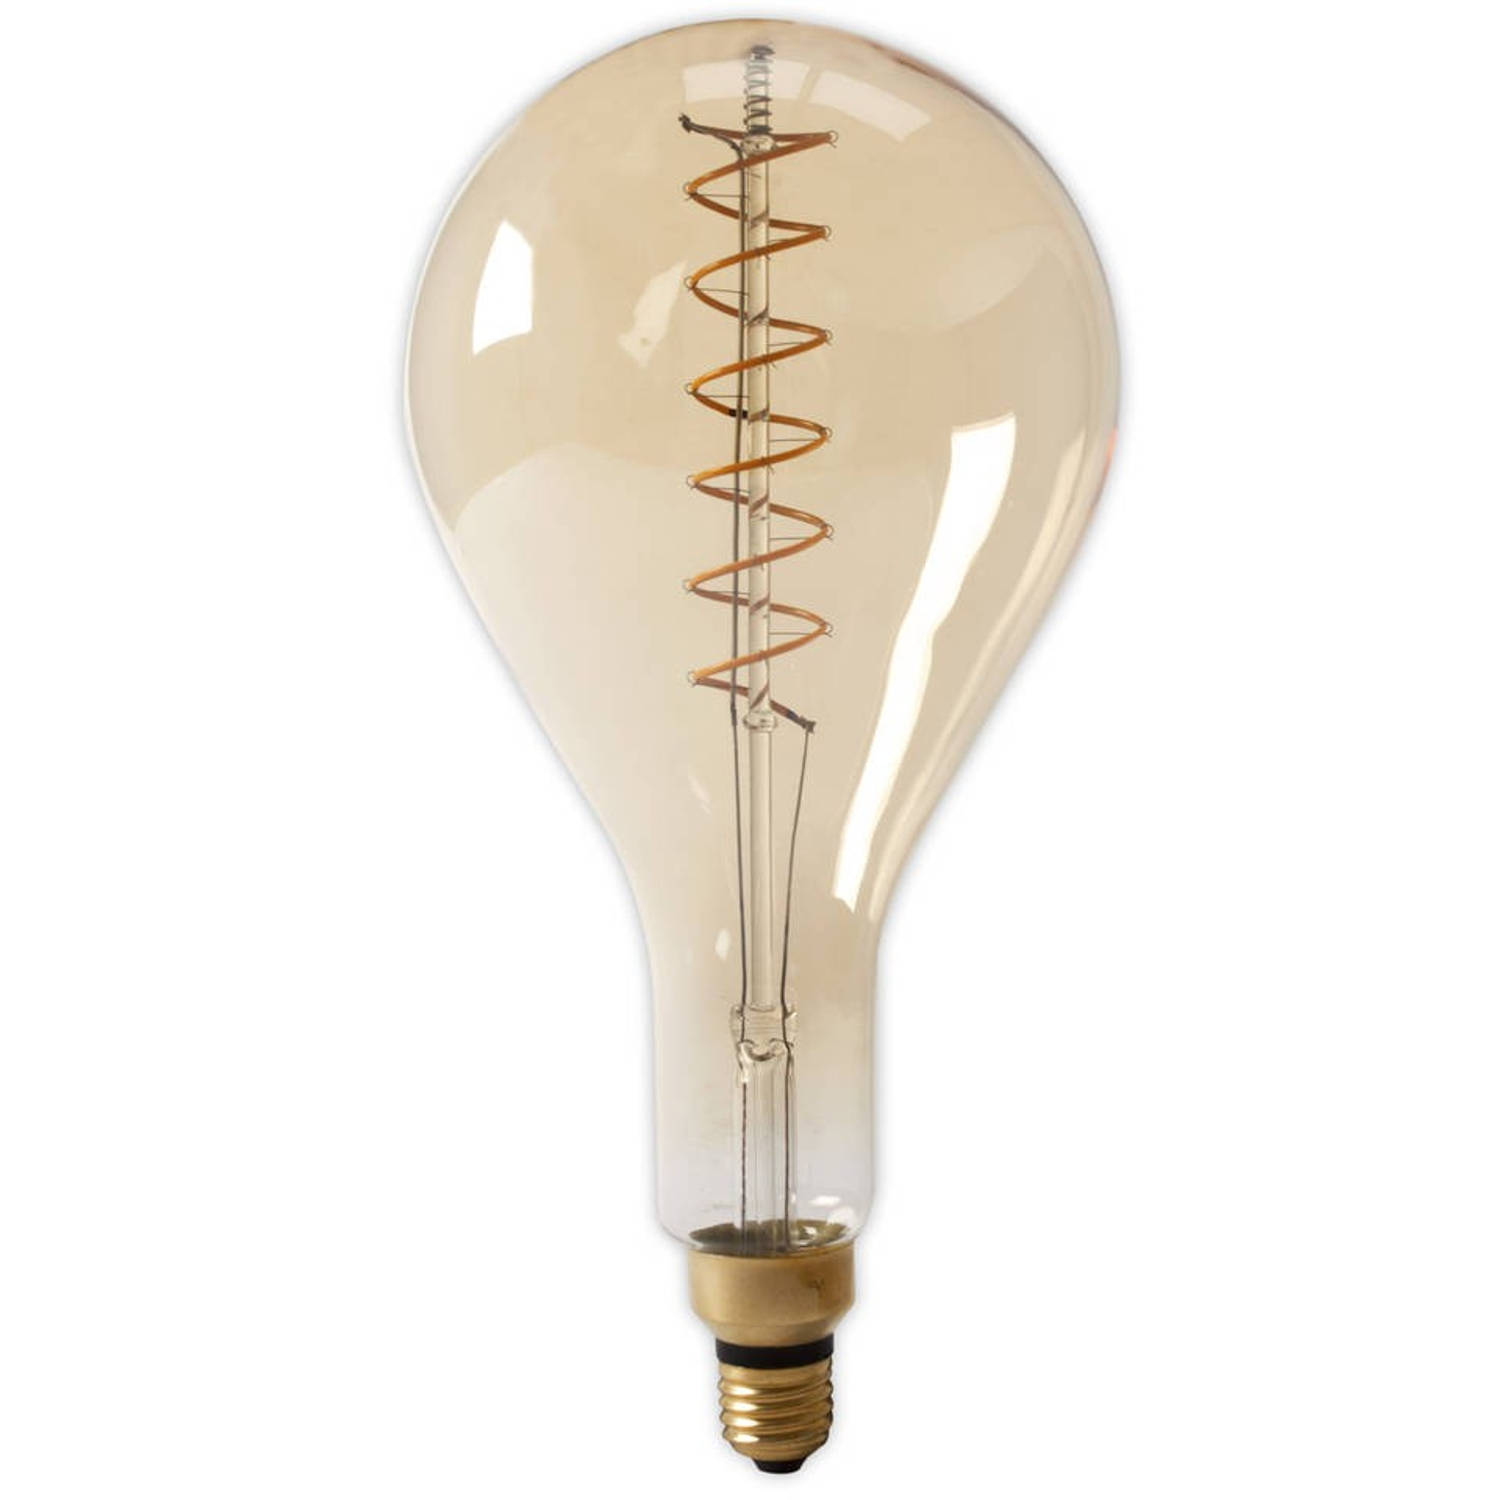 LED VOLGLAS FILAMENT SPLASH 240V 4W E27 GOLD DIMB.